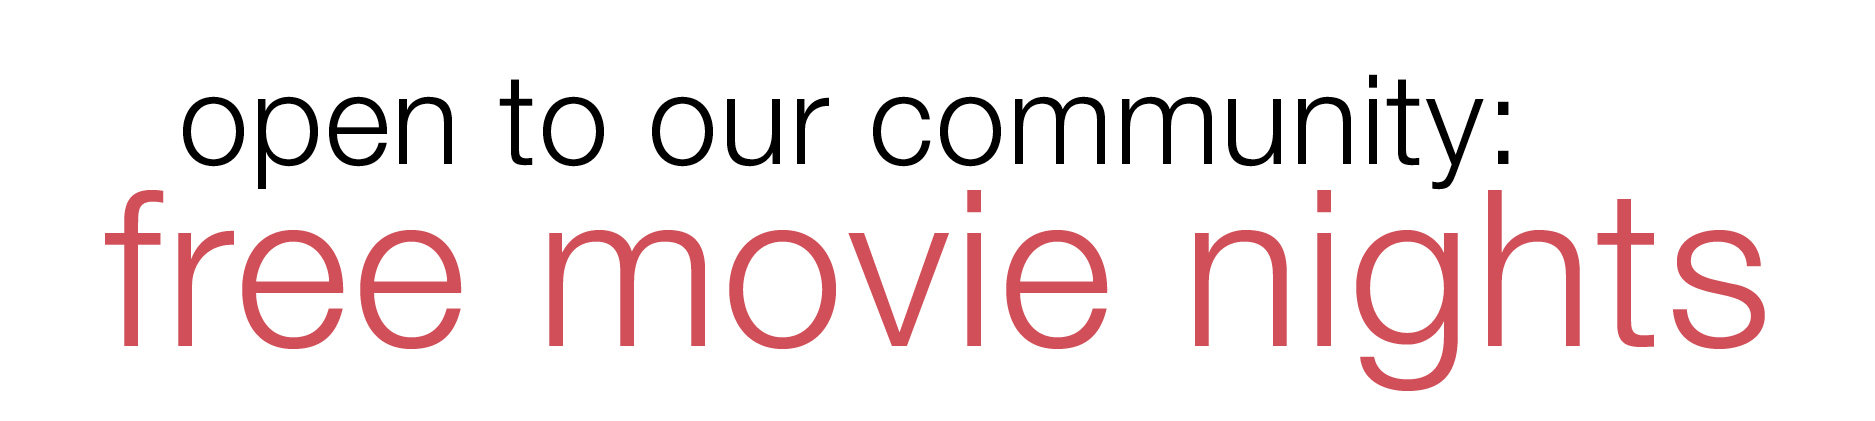 Open to our community: Free movie nights